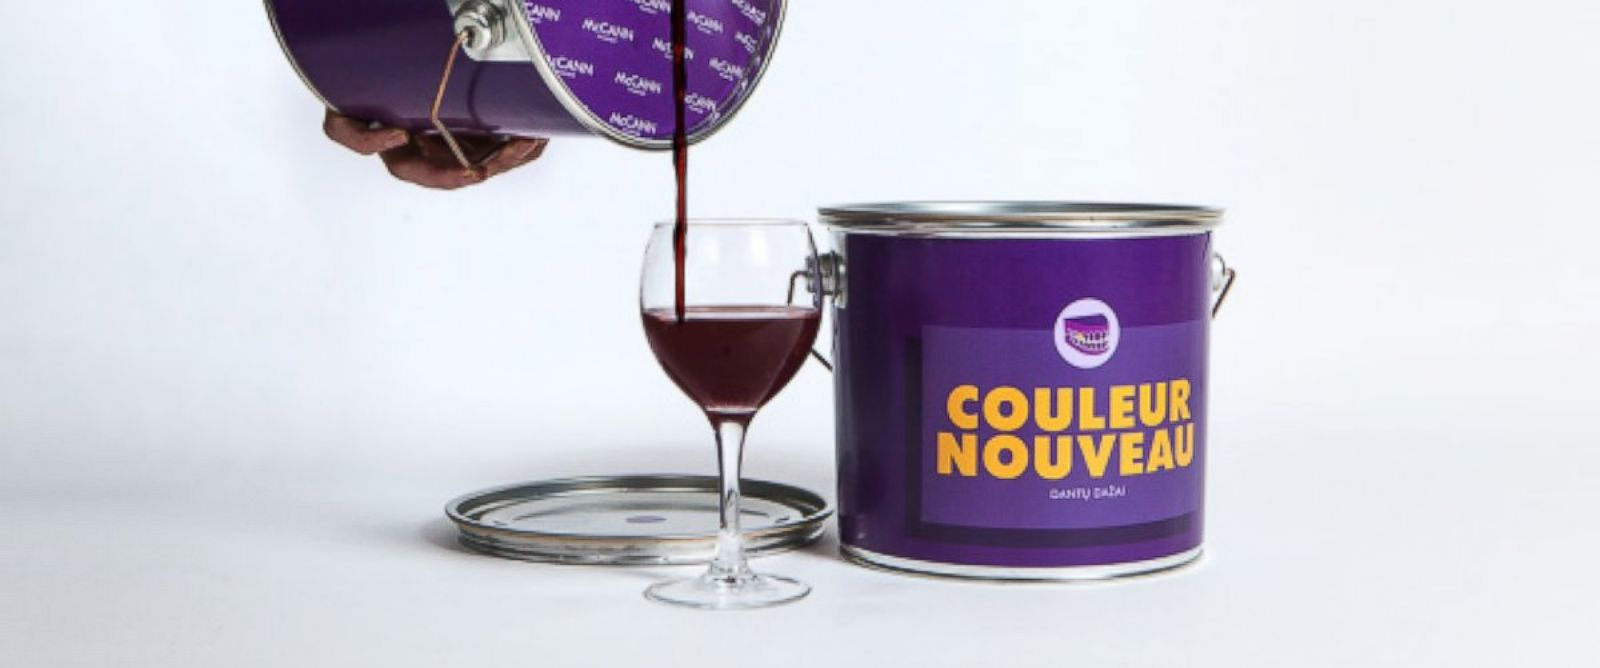 PHOTO: The McCann Vilnius ad agency in Lithuania came up with an unexpected vessel to feature the Couleur Nouveau vintage in -- a purple paint can.